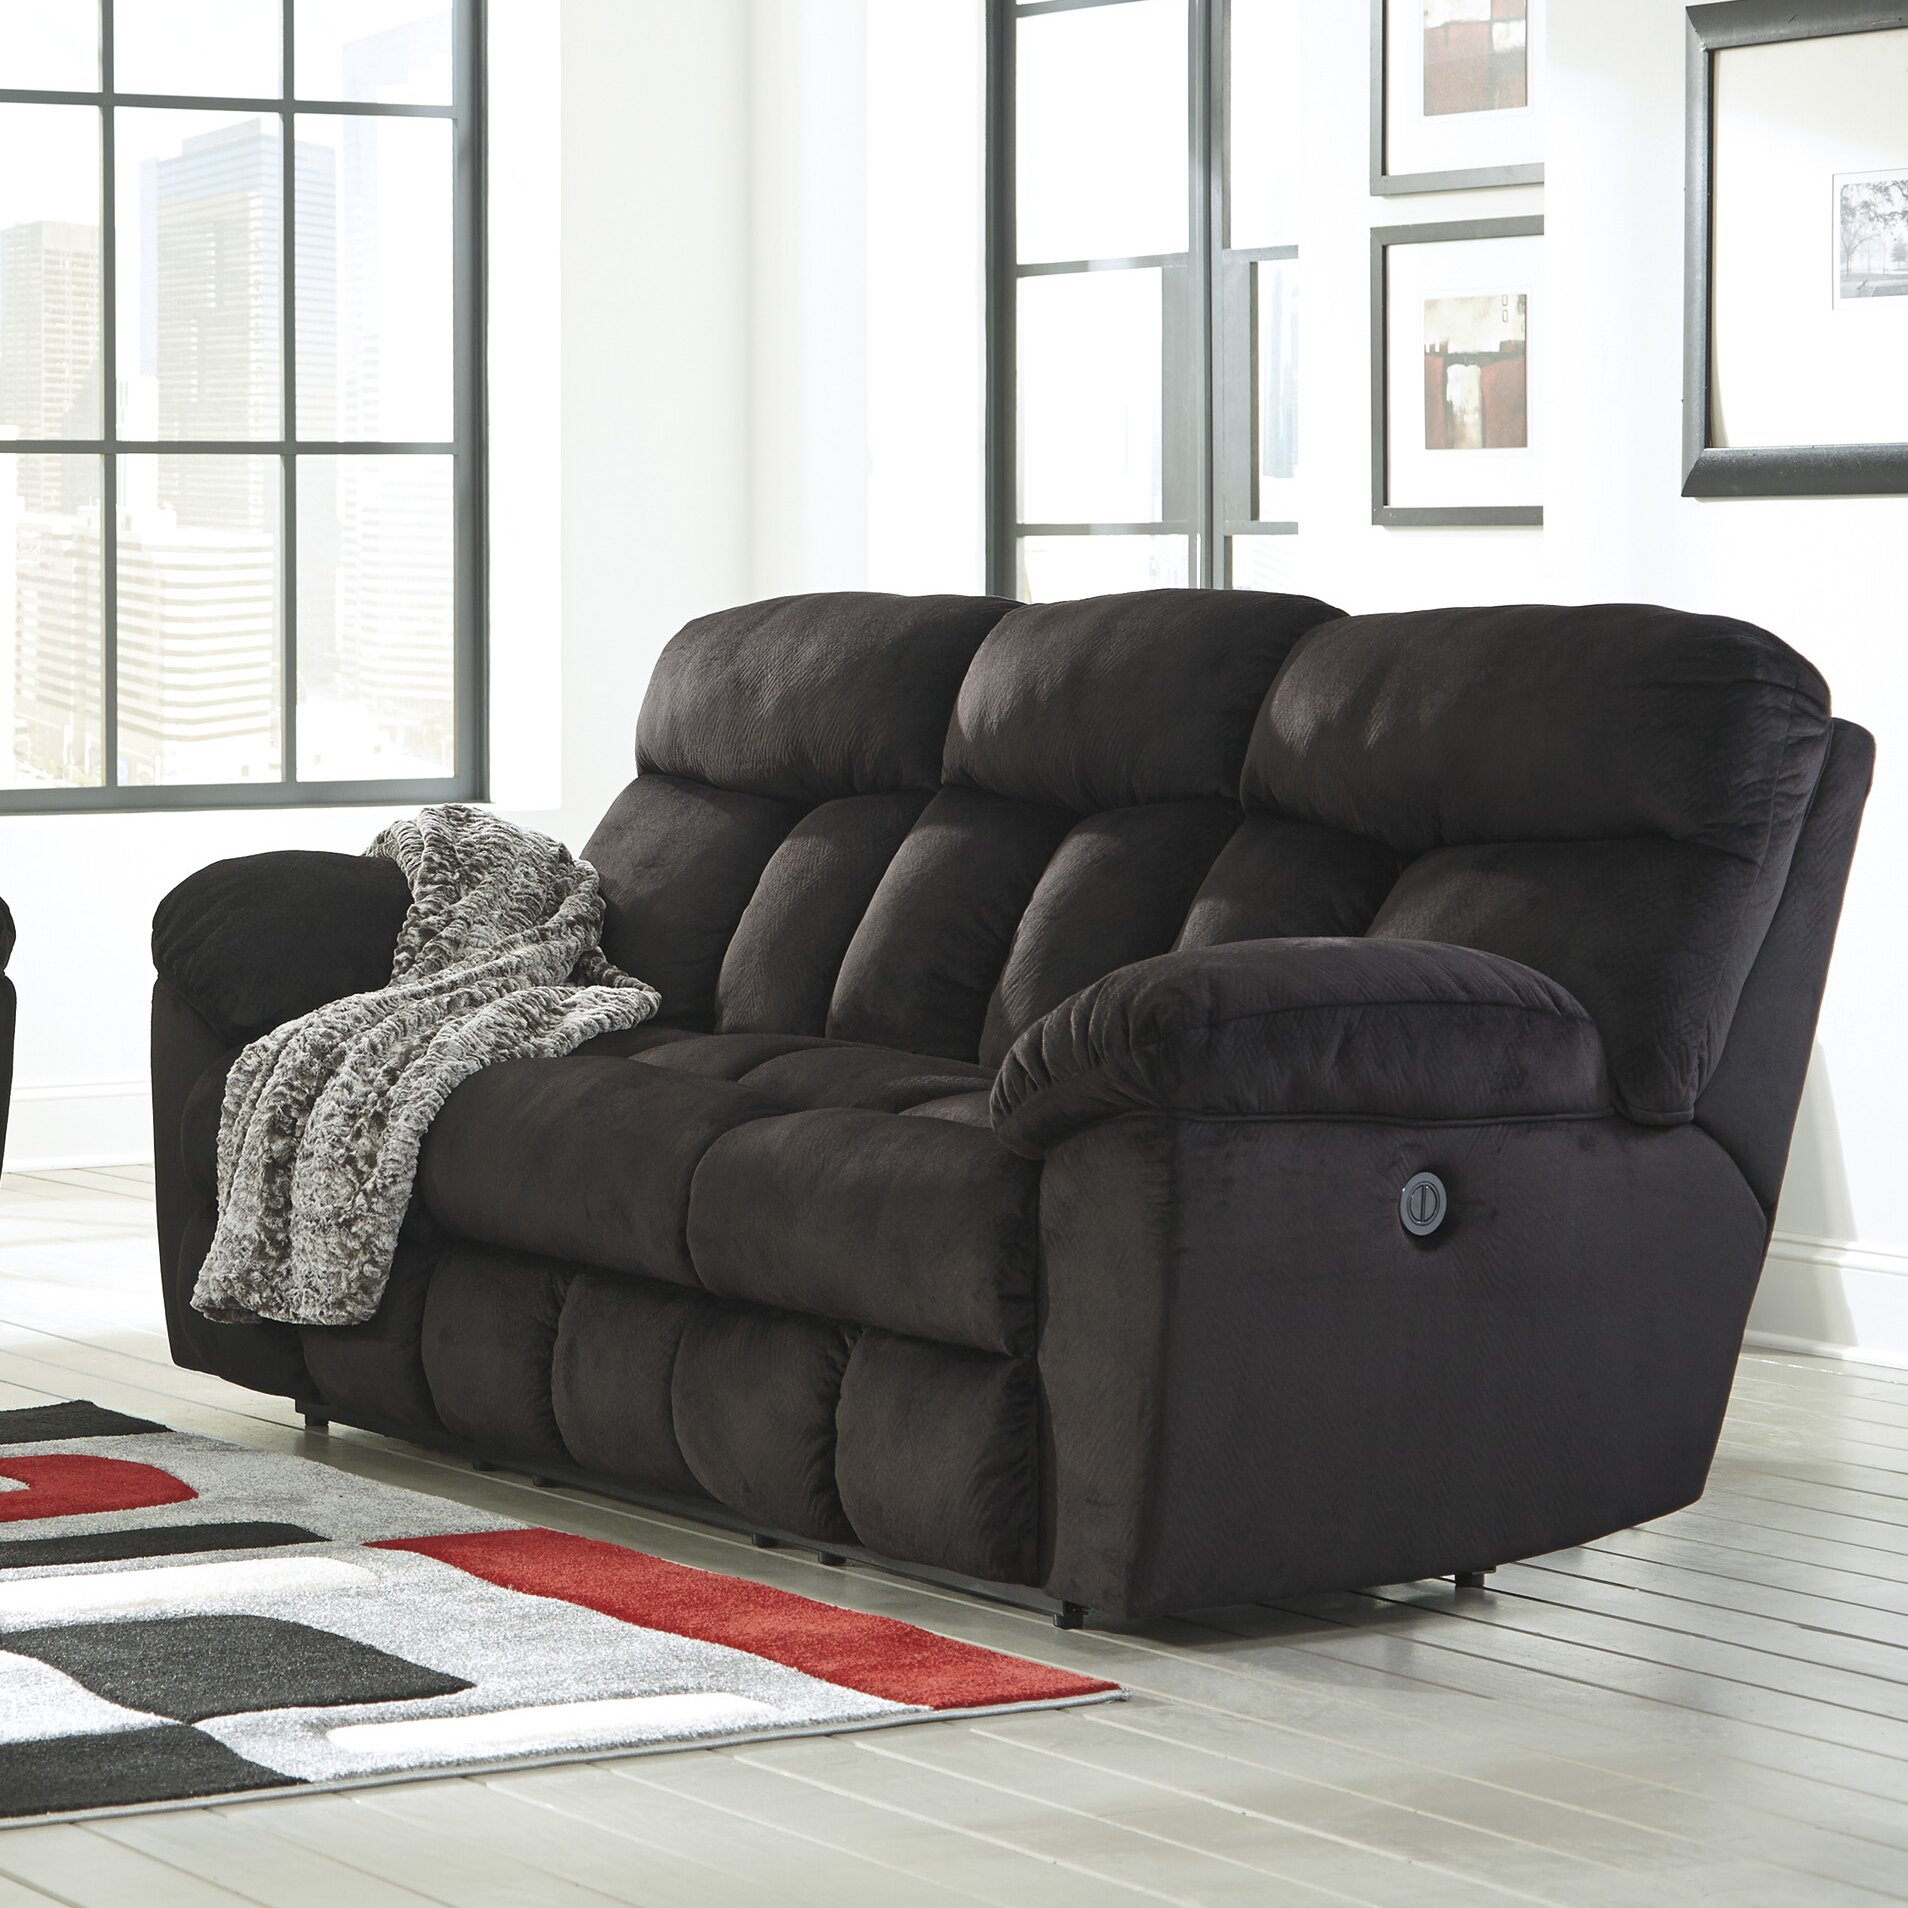 Sofa schilling simple fat with sofa schilling elegant deutsch awesome schilling sofa with sofas wayfair also saul reclining sofa from wayfaircom with sofa schilling parisarafo Images